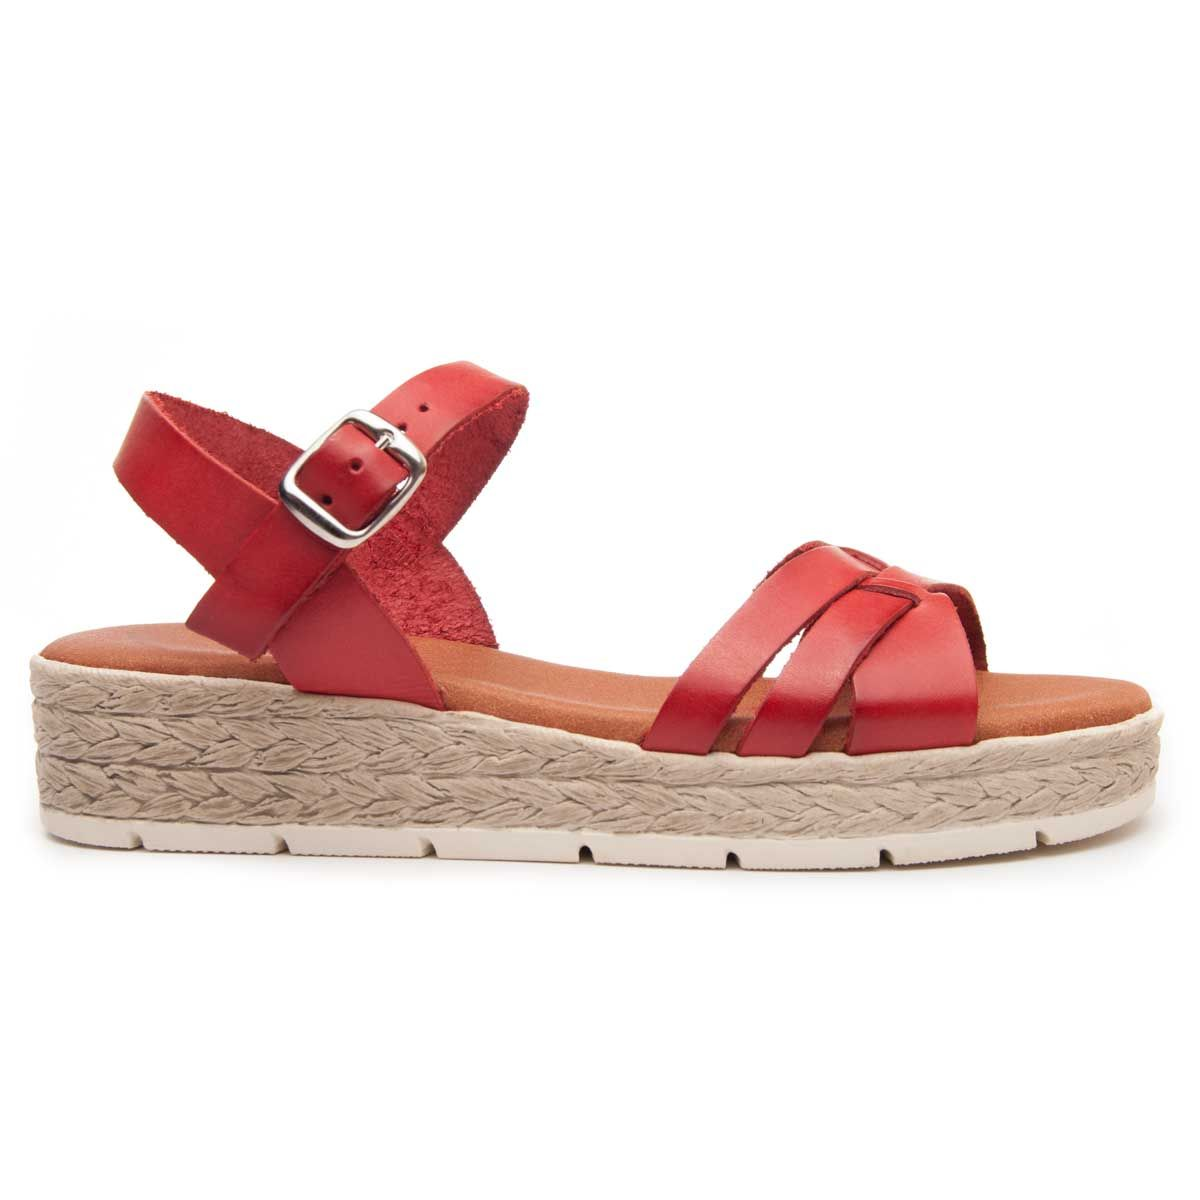 Leindia Strappy Sandal in Red